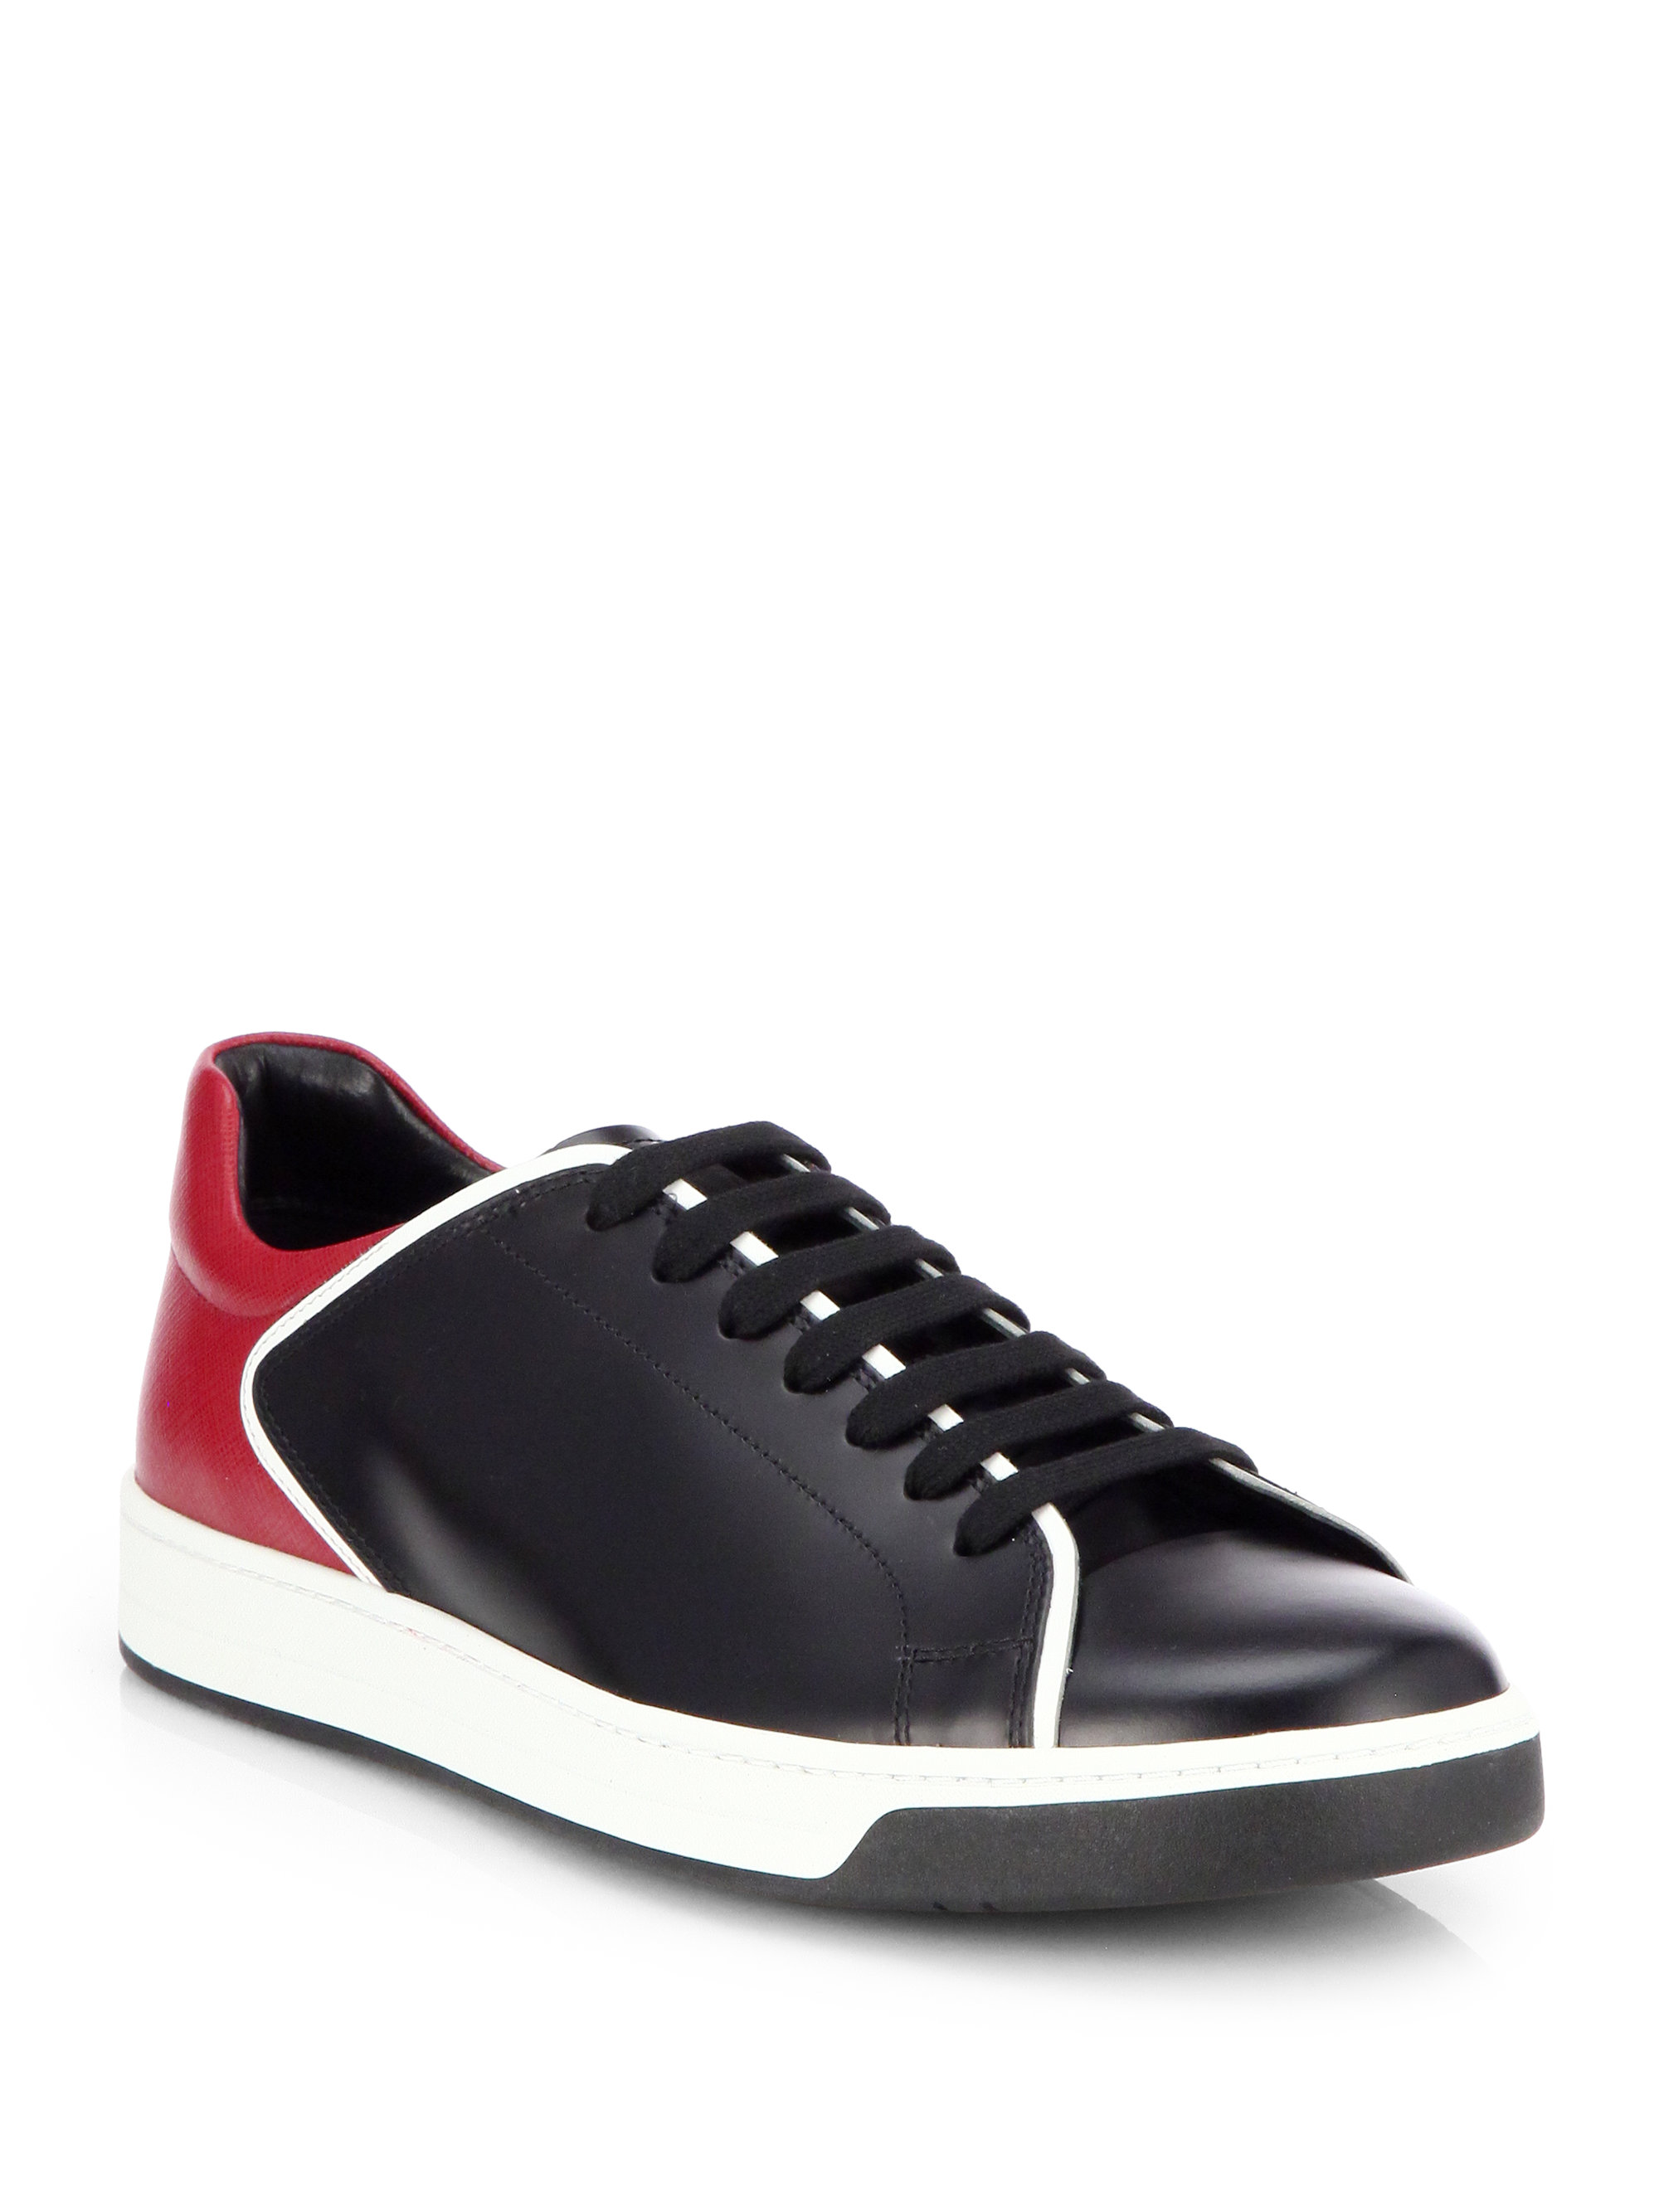 Prada Bicolor Leather Laceup Sneakers In Red For Men